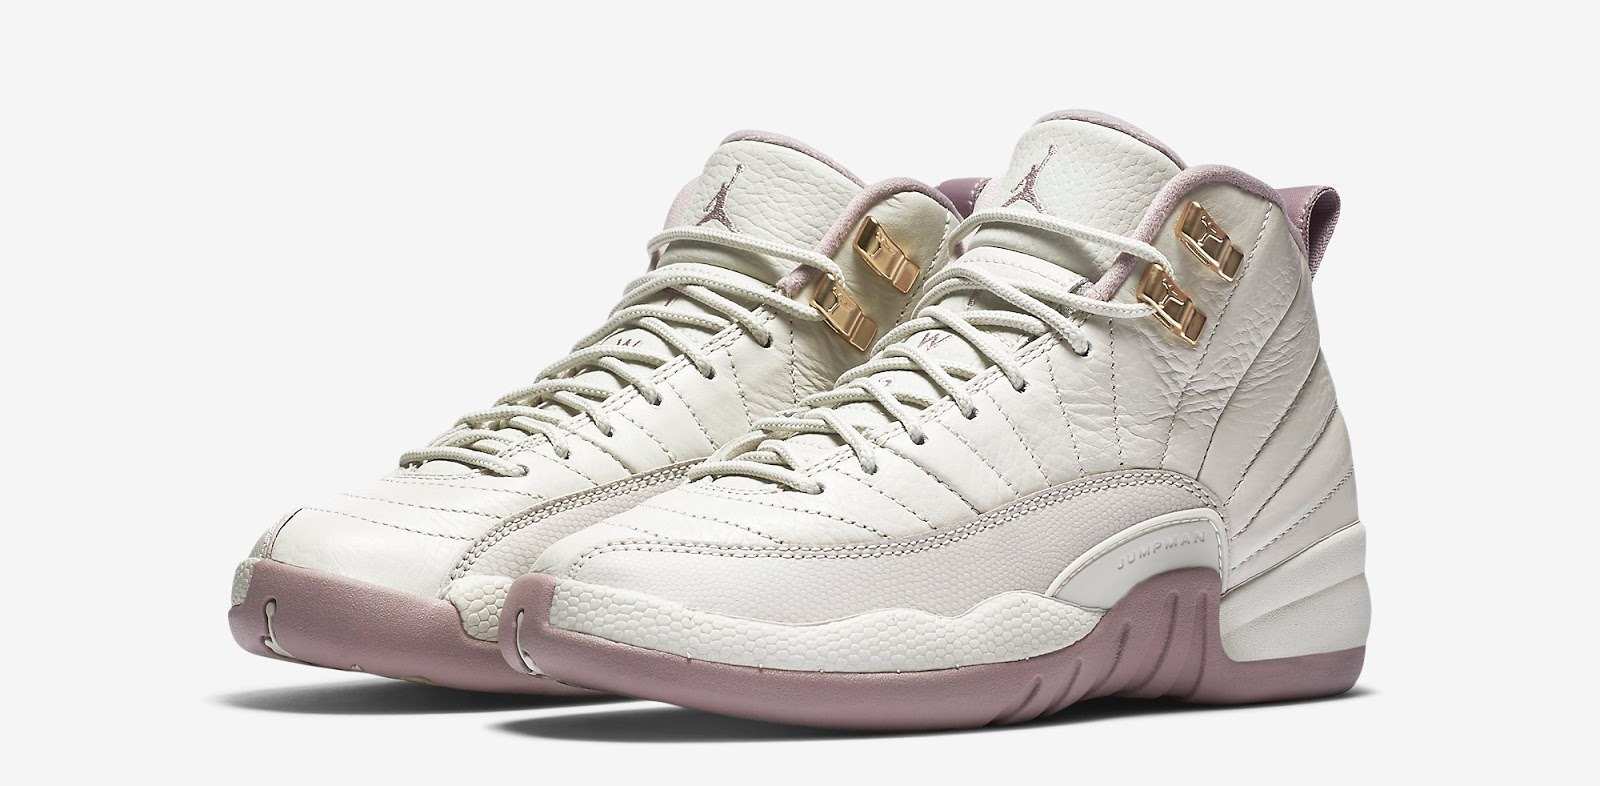 4c02f7ffc6de ... Girls Air Jordan 12 Retro GG Light Bone Metallic Gold Star-Plum Fog  Release Reminder NIKE ...